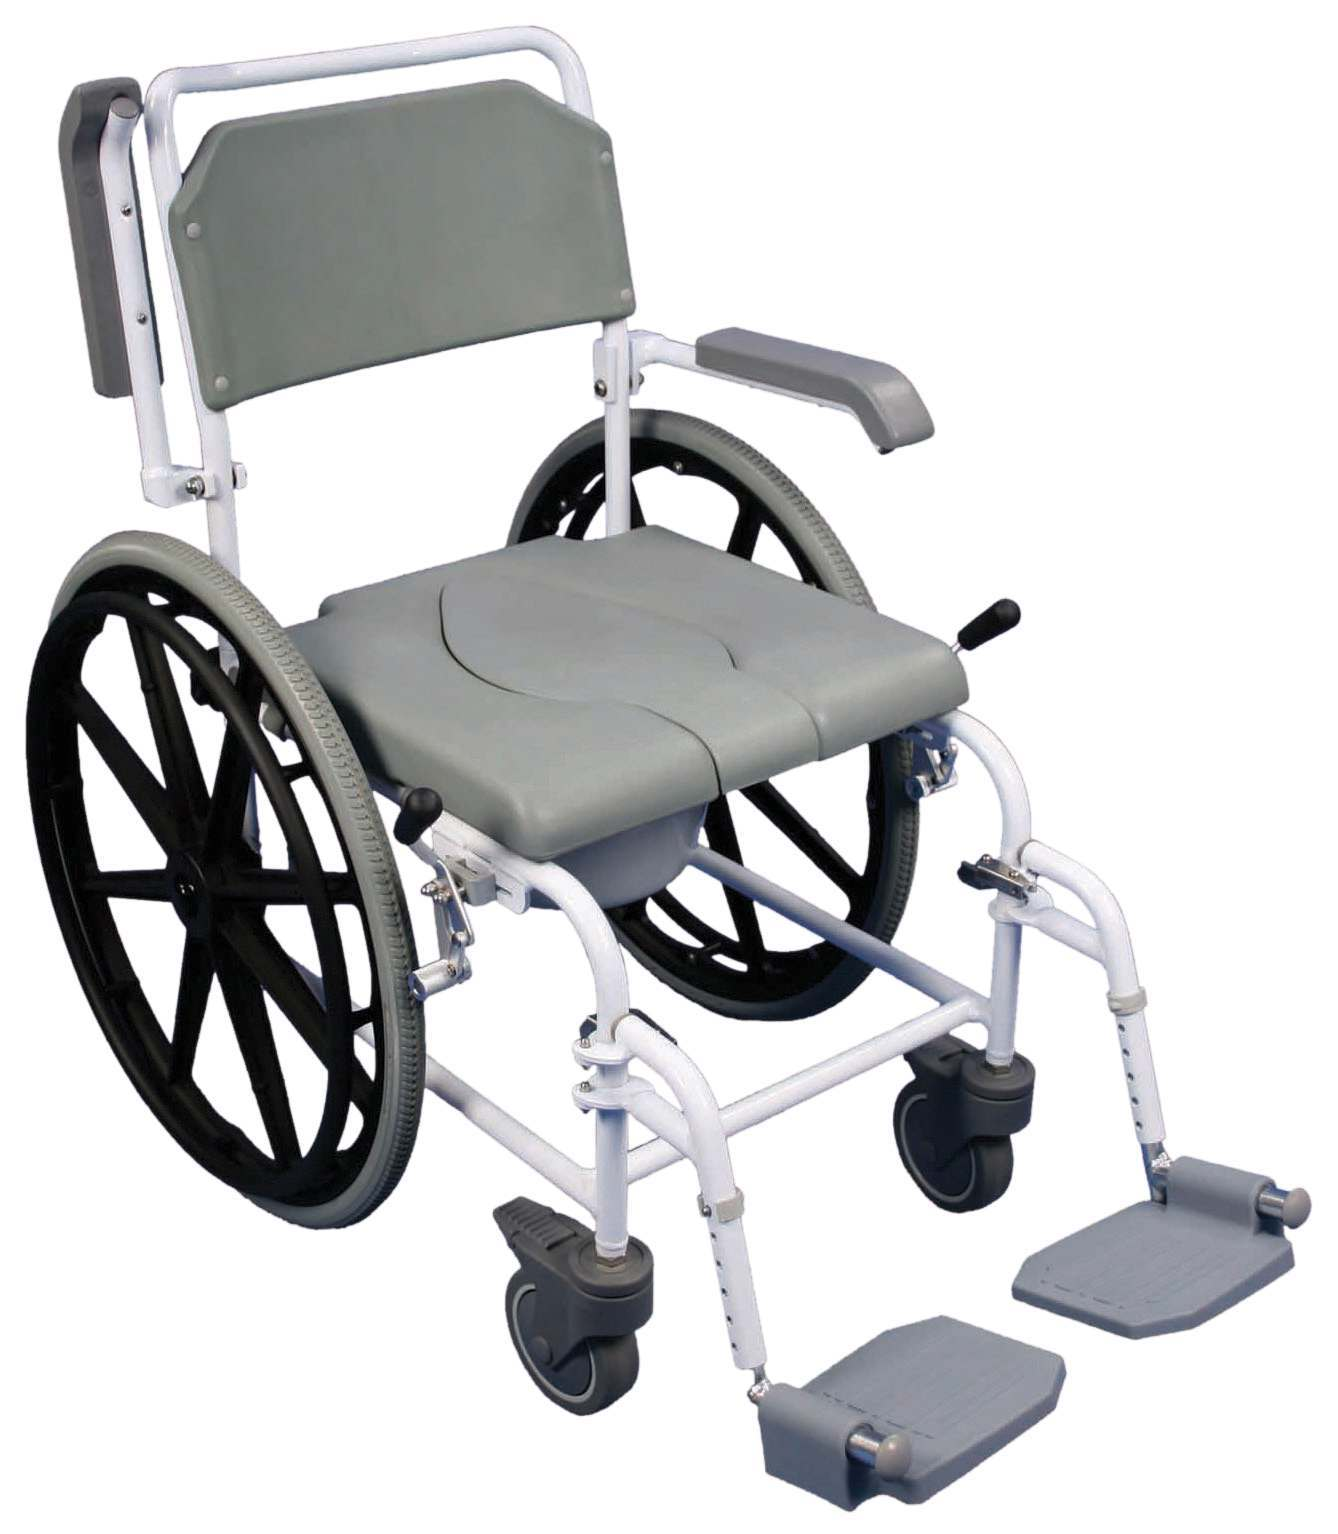 Handicap shower chairs pvc reclining shower commode chairs - The Bewl Self Propelled Shower Commode Chair Shower Chairs